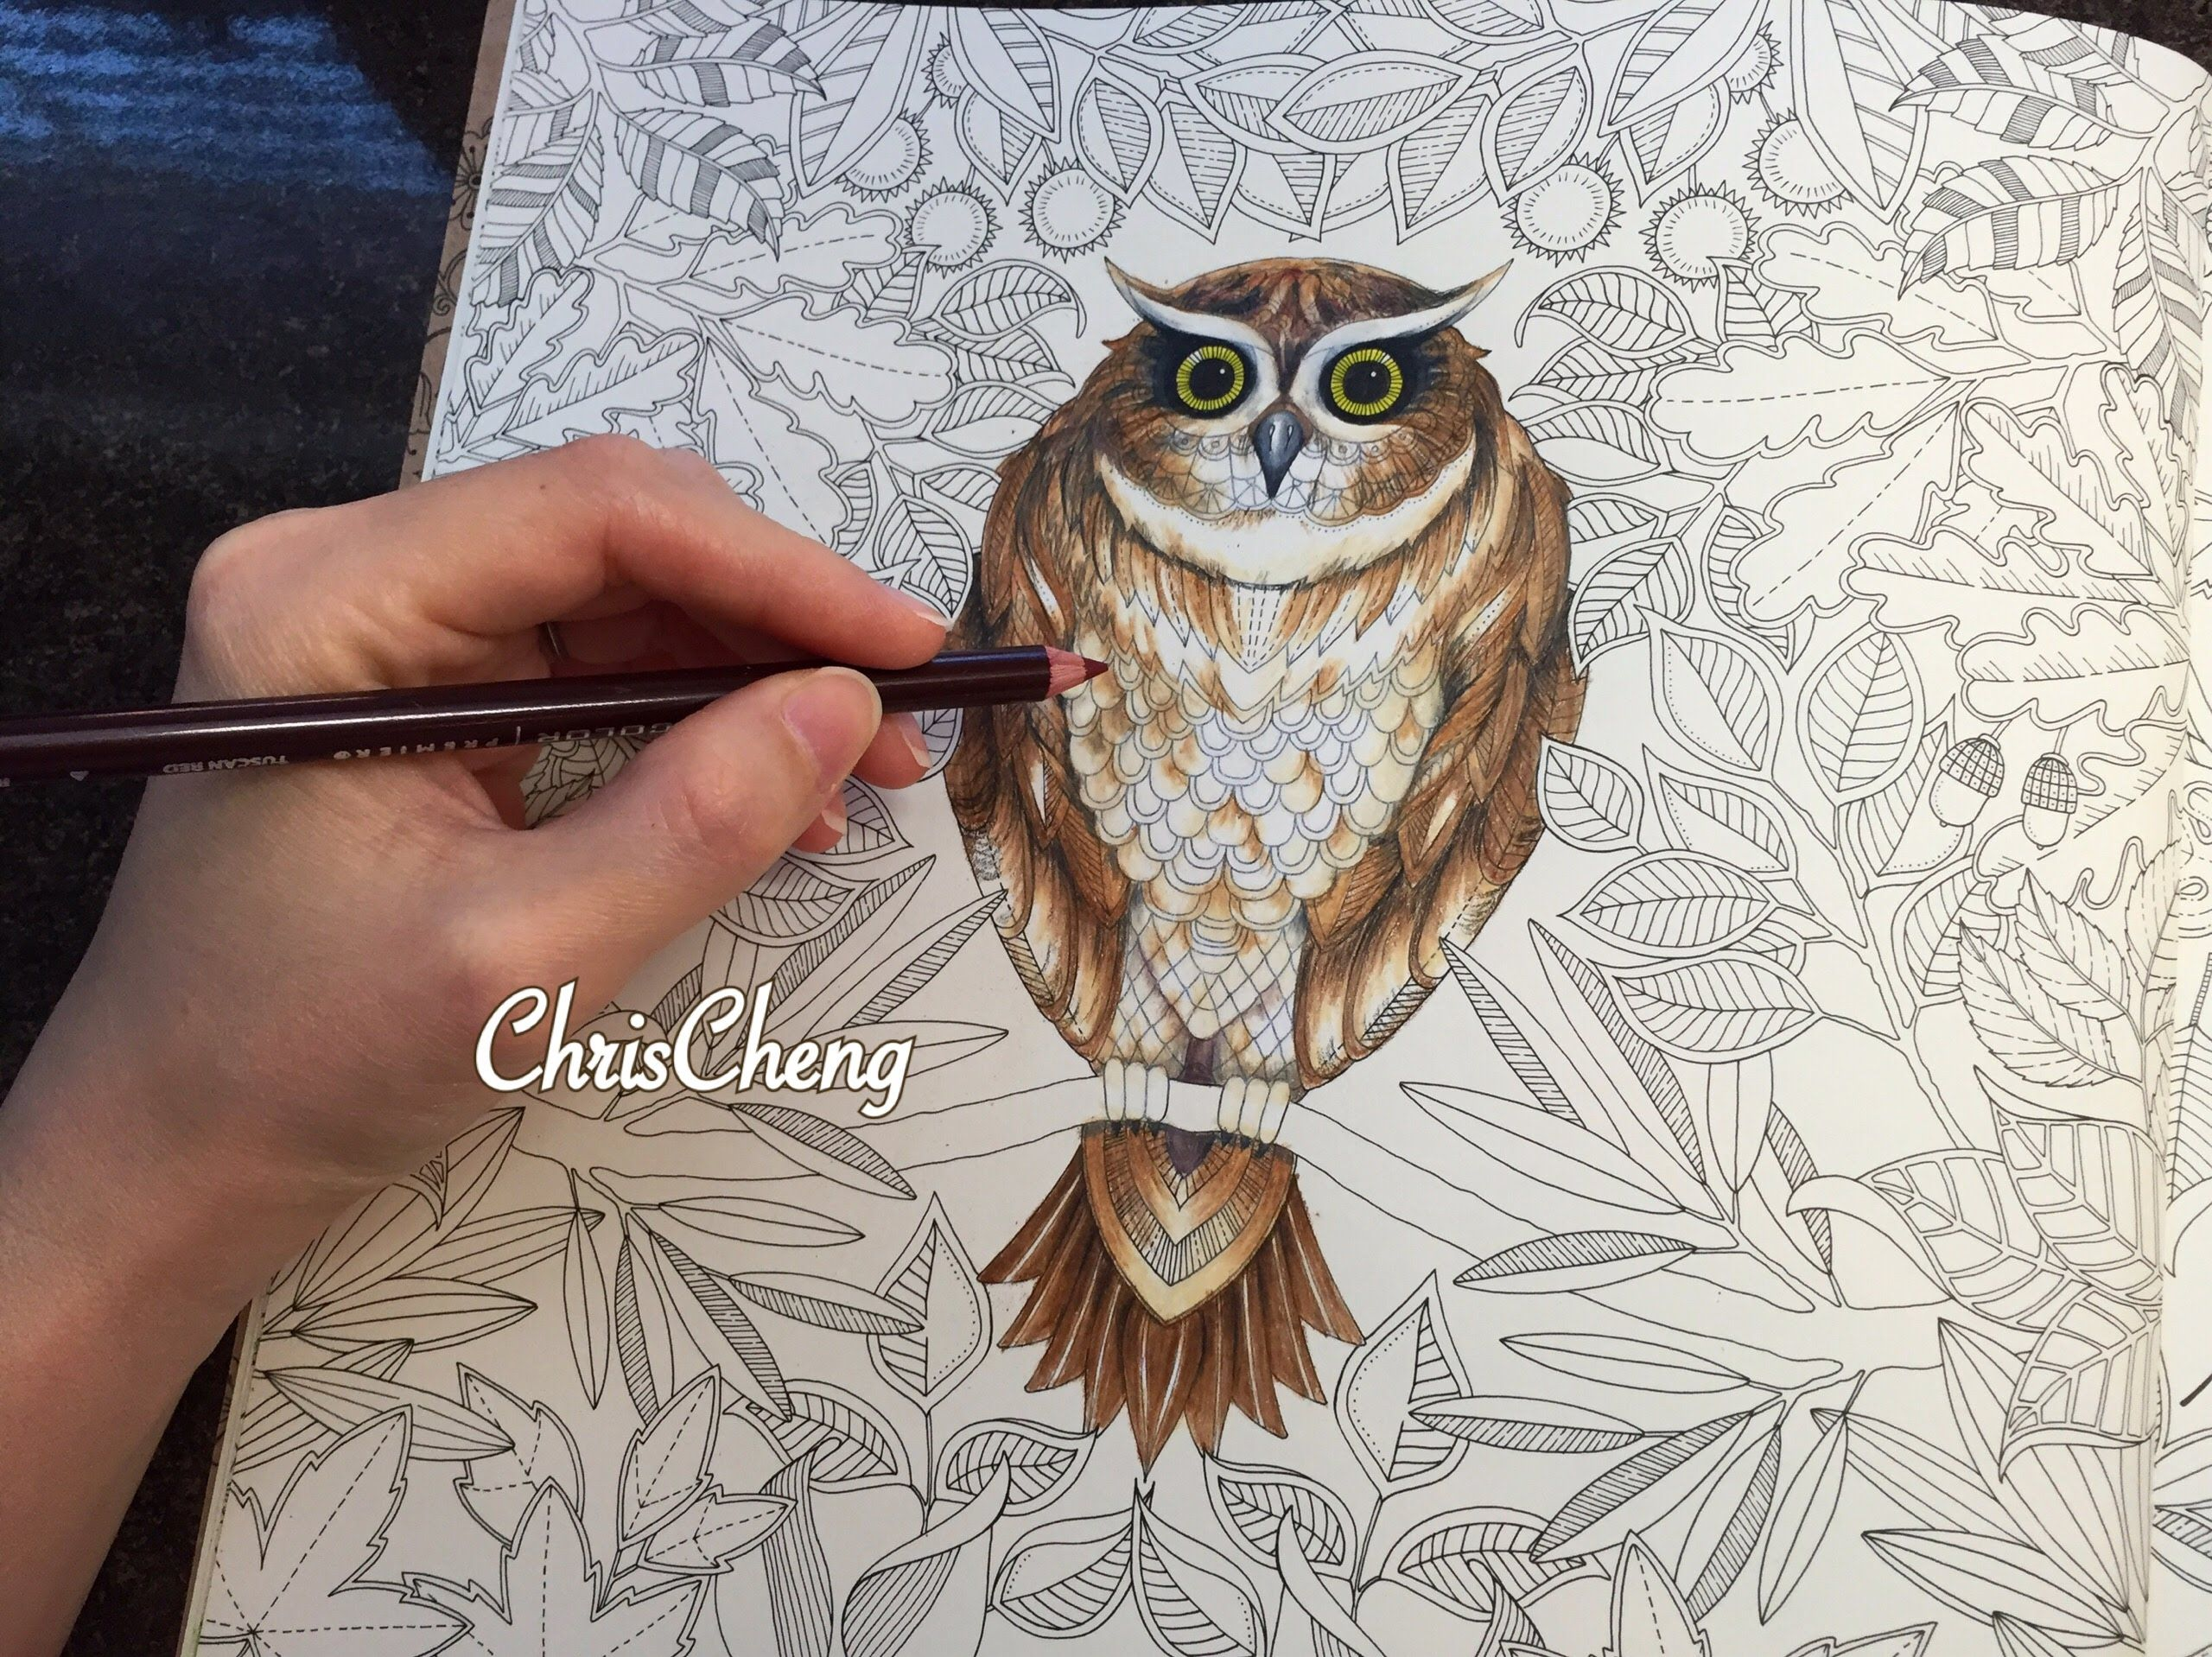 Secret Garden Owl S Coloring With Colored Pencils Secret Garden Coloring Book Finished Secret Garden Coloring Book Gardens Coloring Book